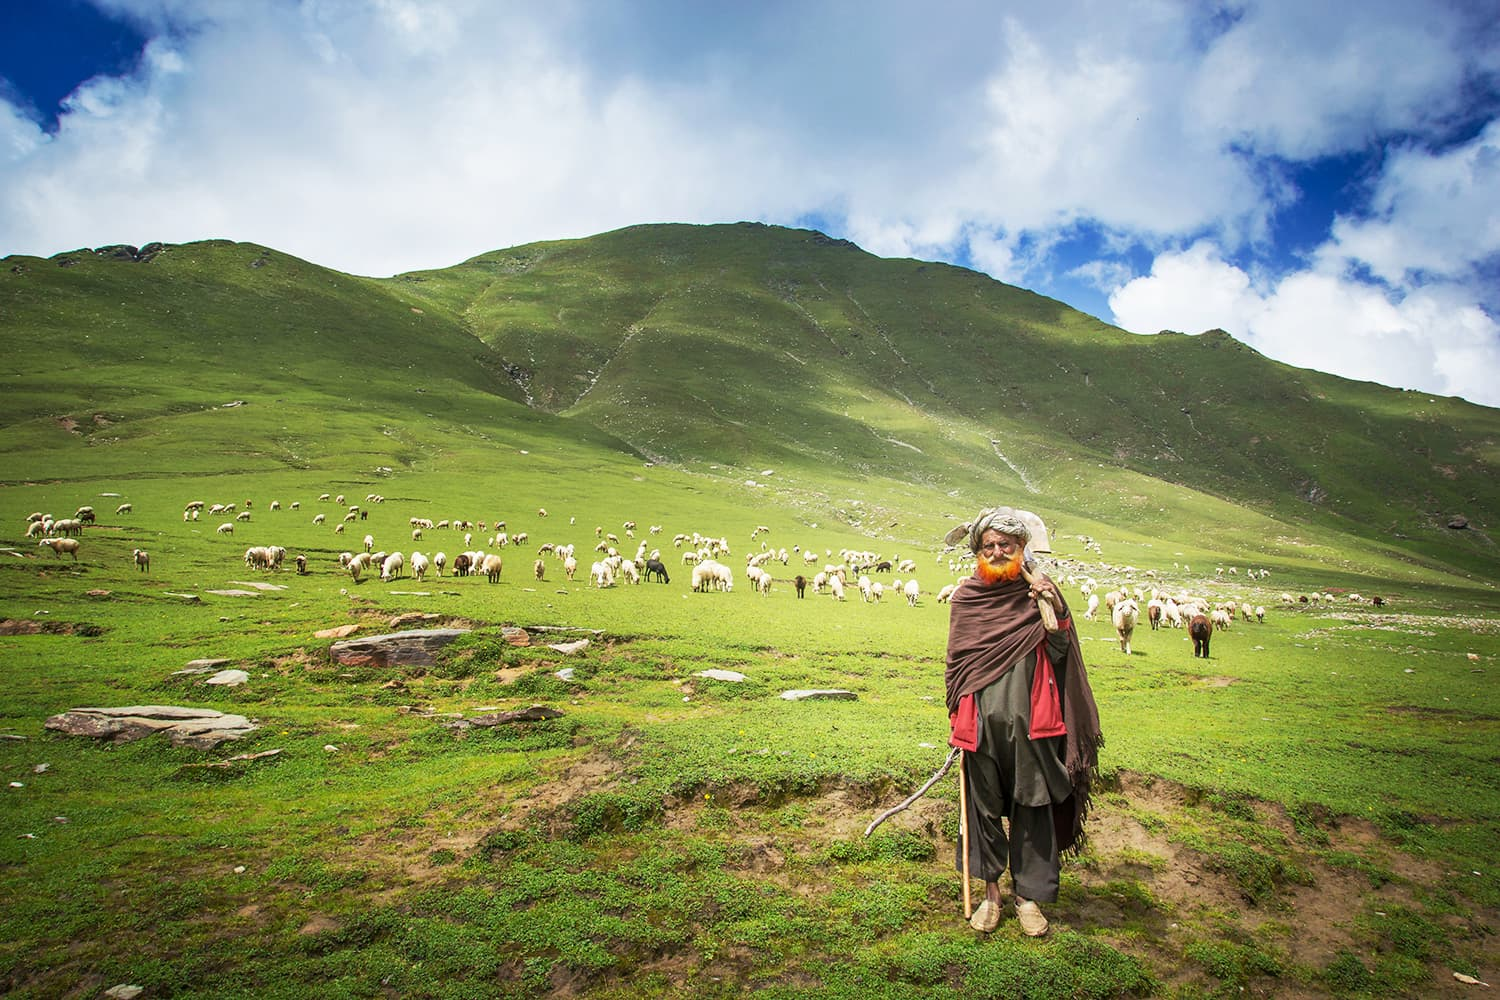 A friendly old man at Araam Gali with his flock of sheep.